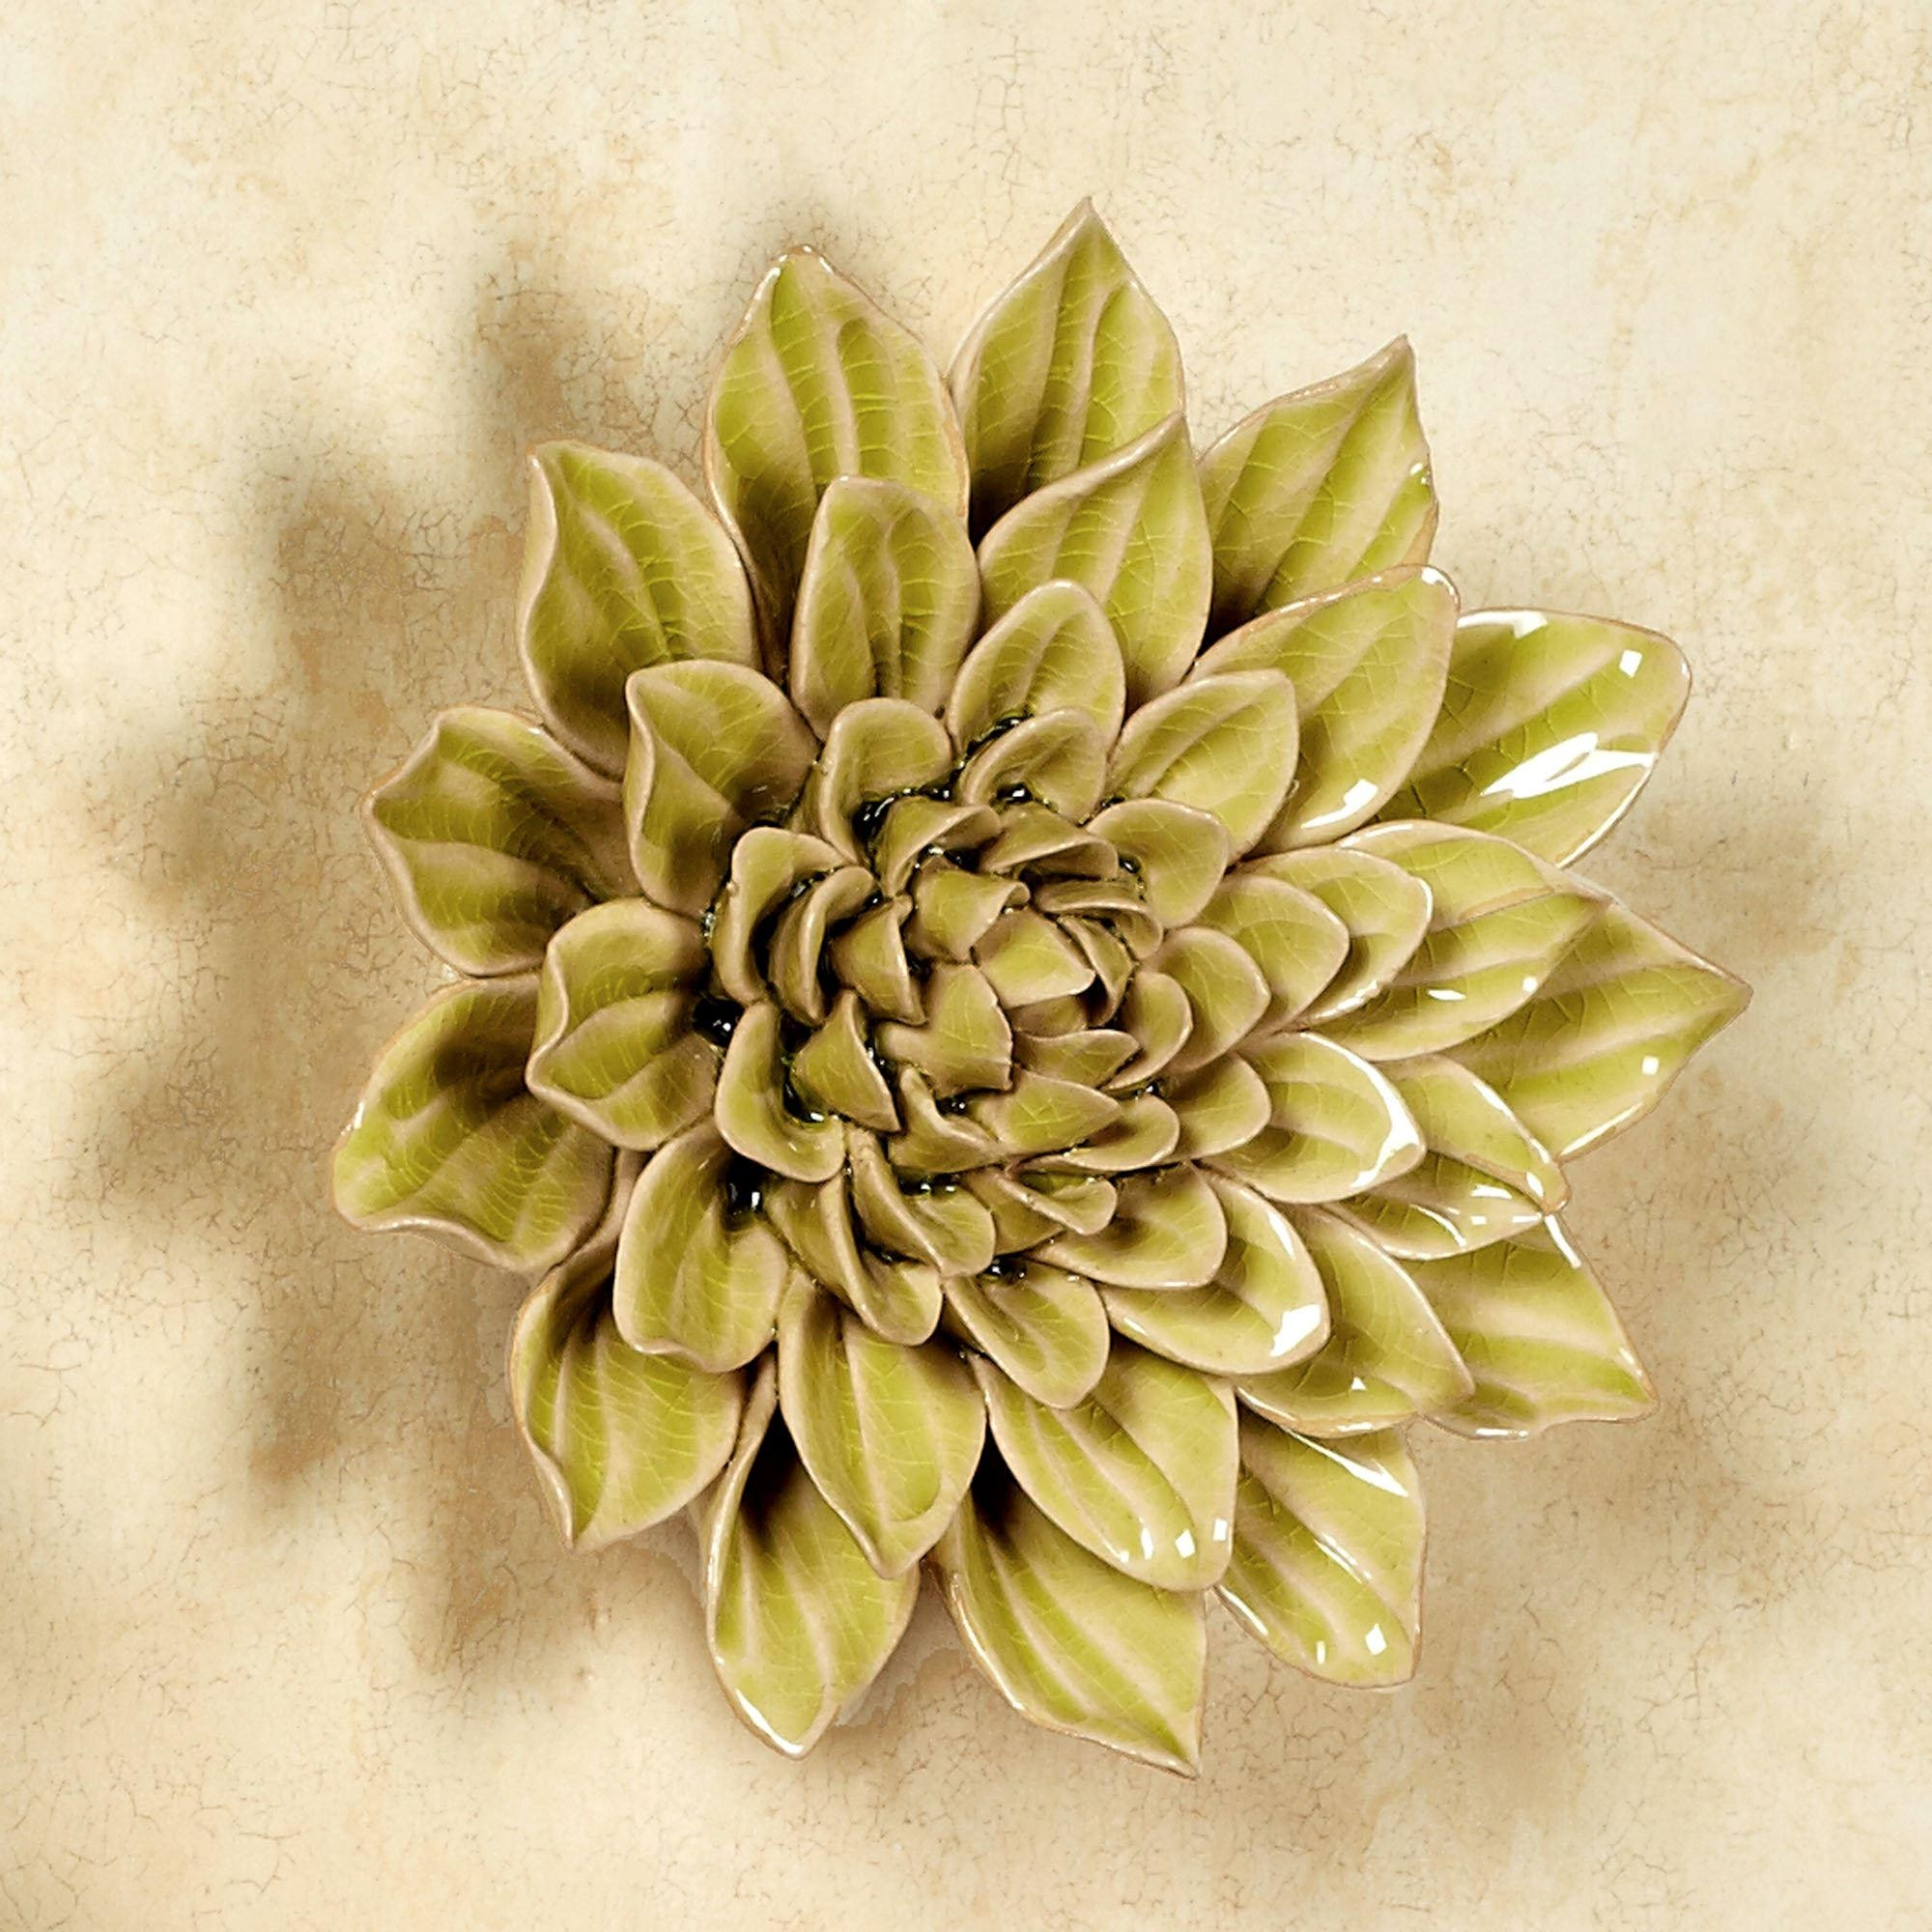 Isabella Ceramic Flower Blossom Wall Art Pertaining To Italian Ceramic Wall Art (Image 6 of 20)